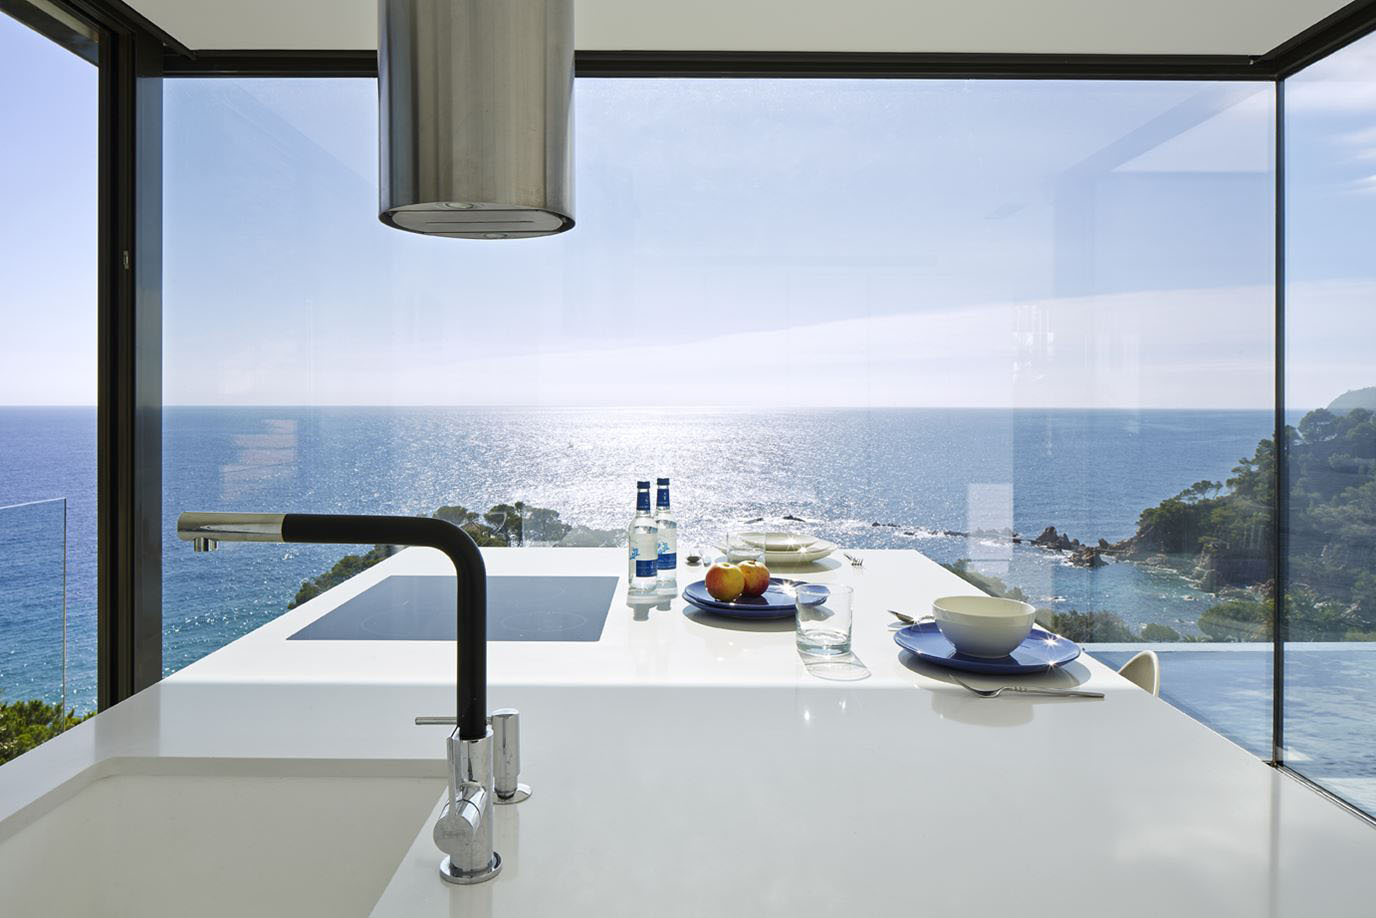 Modern Kitchen with stunning ocean view